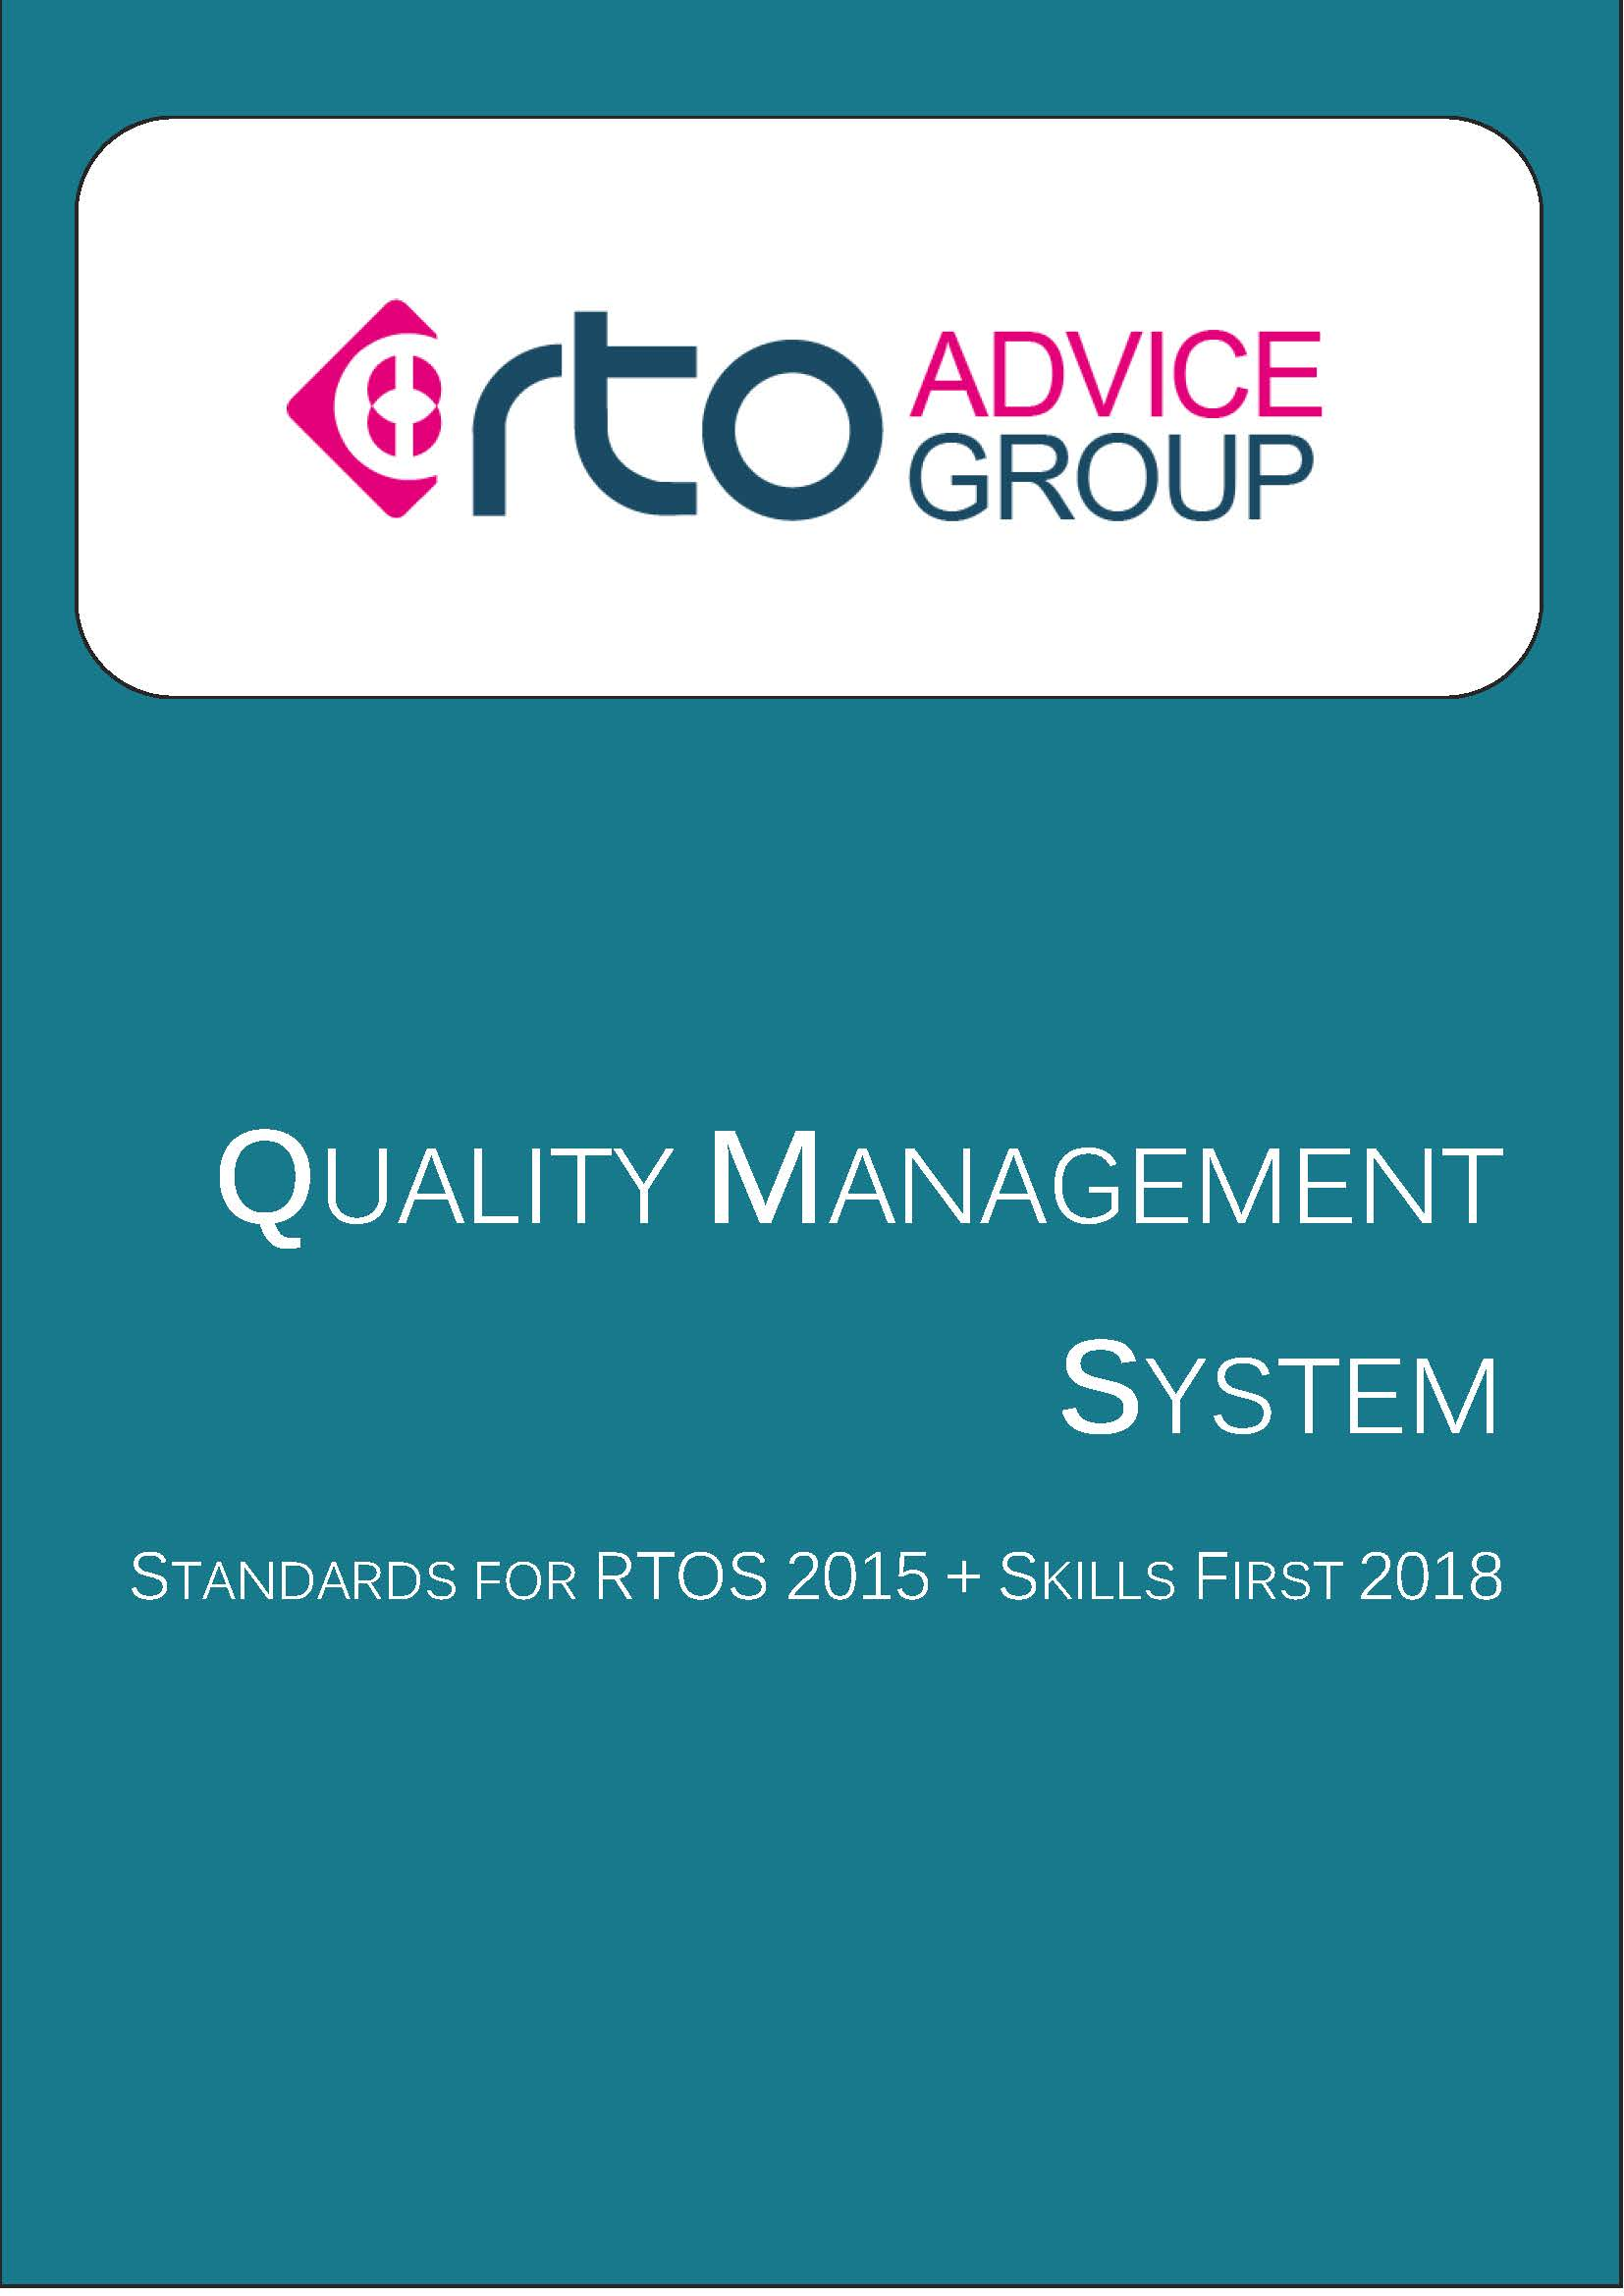 Quality Management System – Standards for RTOs 2015 + Skills First 2018